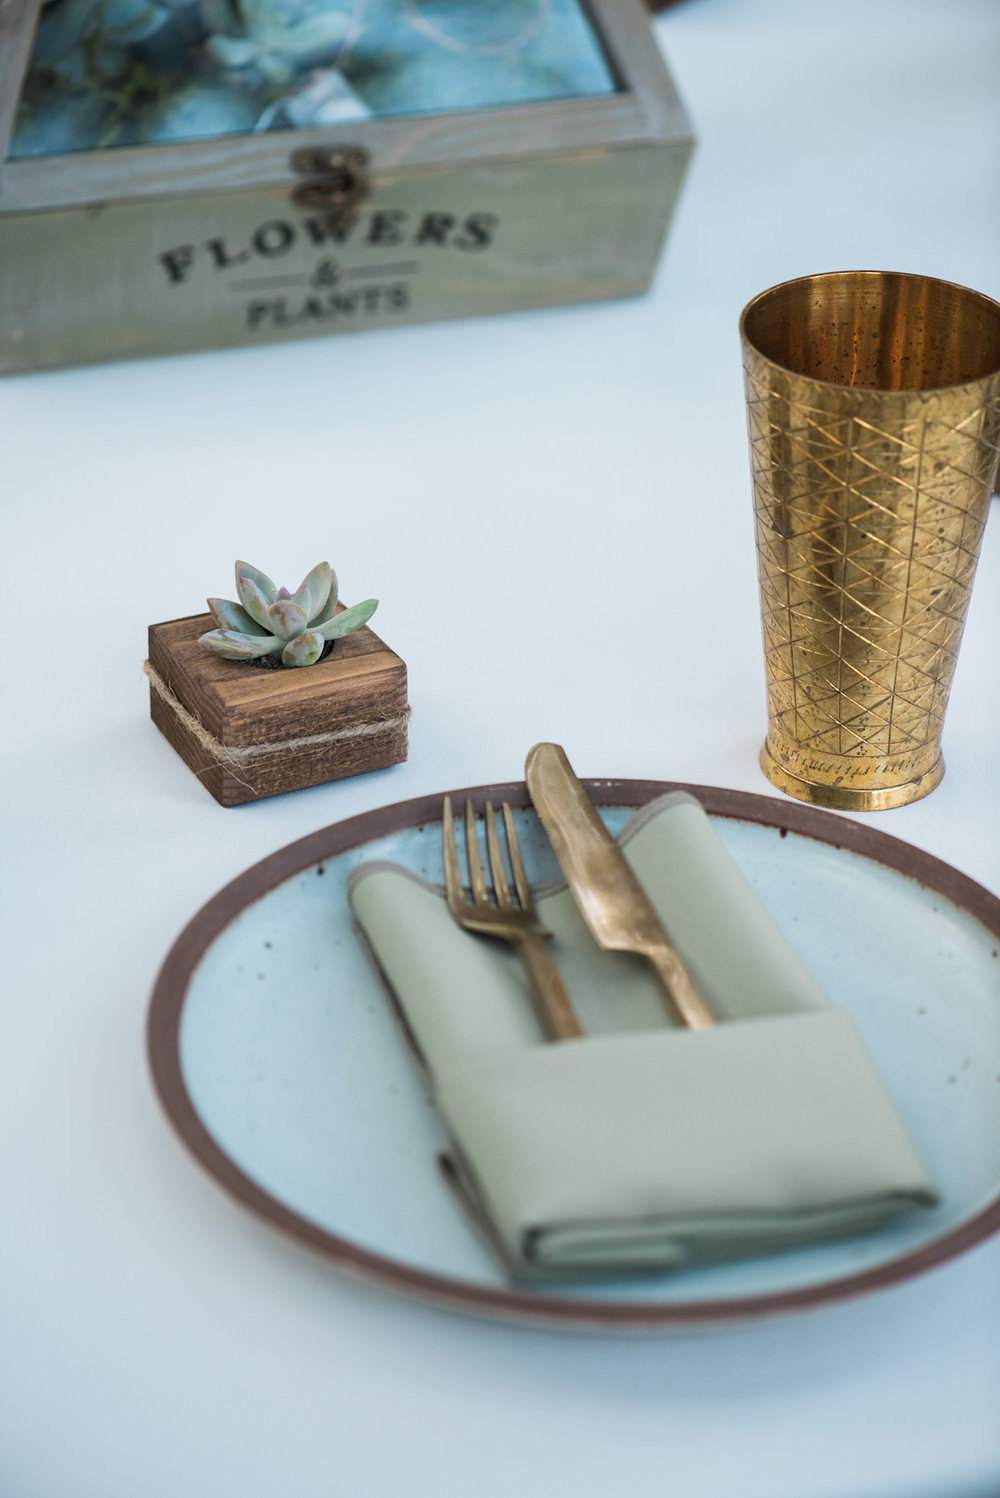 circle oak ranch farm wedding california guest table setting including small wooden plant holder with succulent